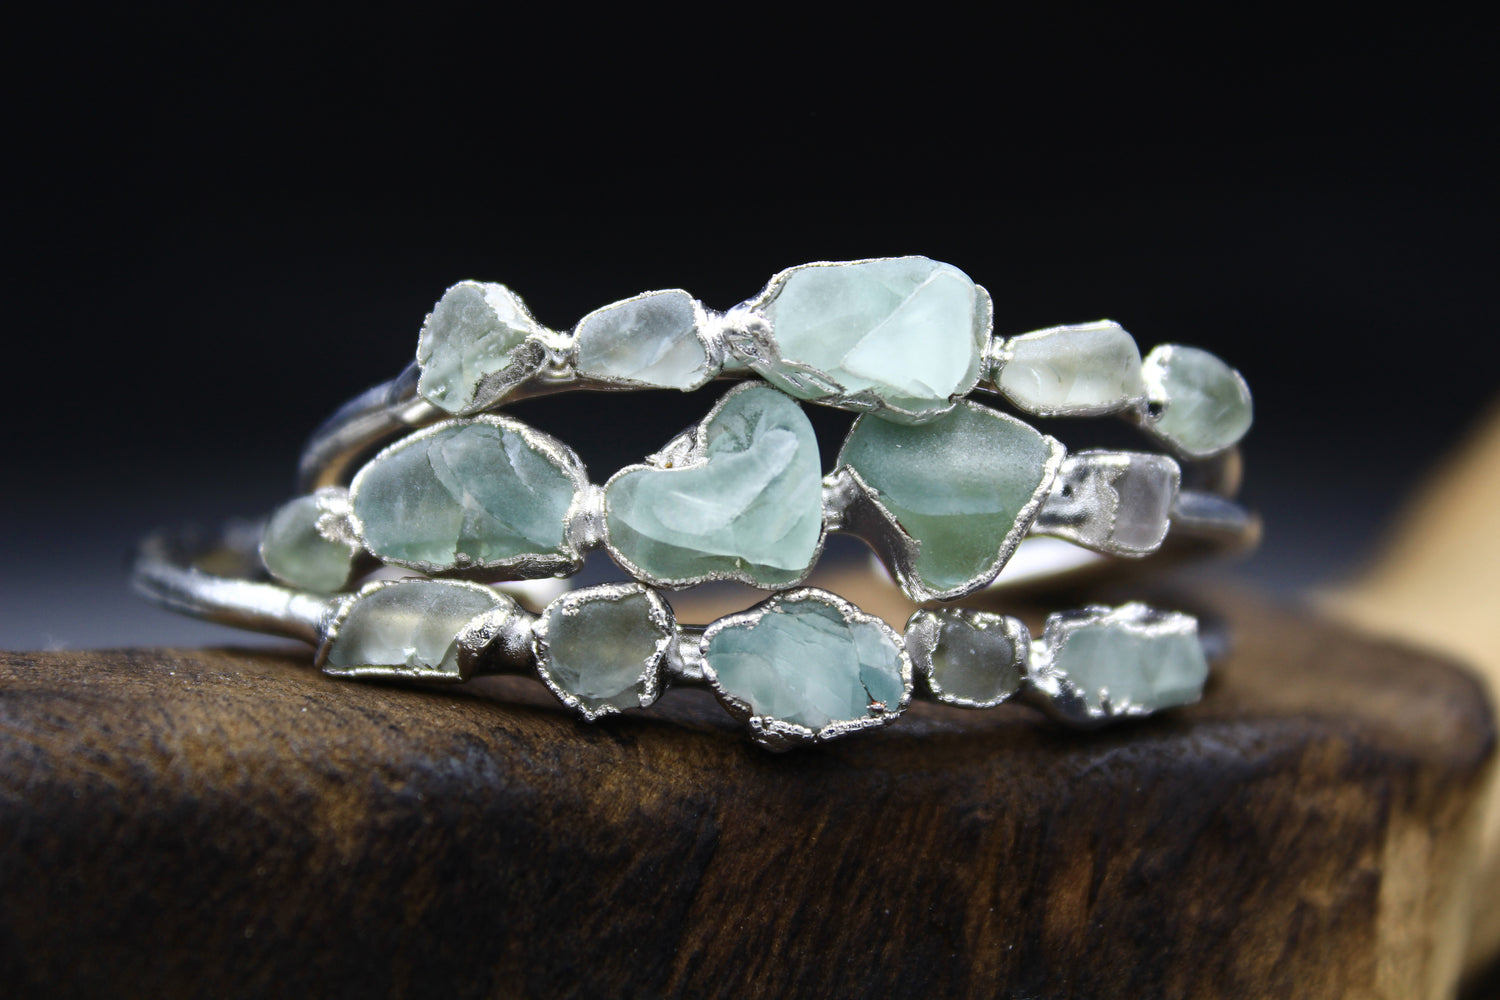 Chunky Fluorite Bracelet Plated in Rhodium-Bracelets-The Fox And Stone